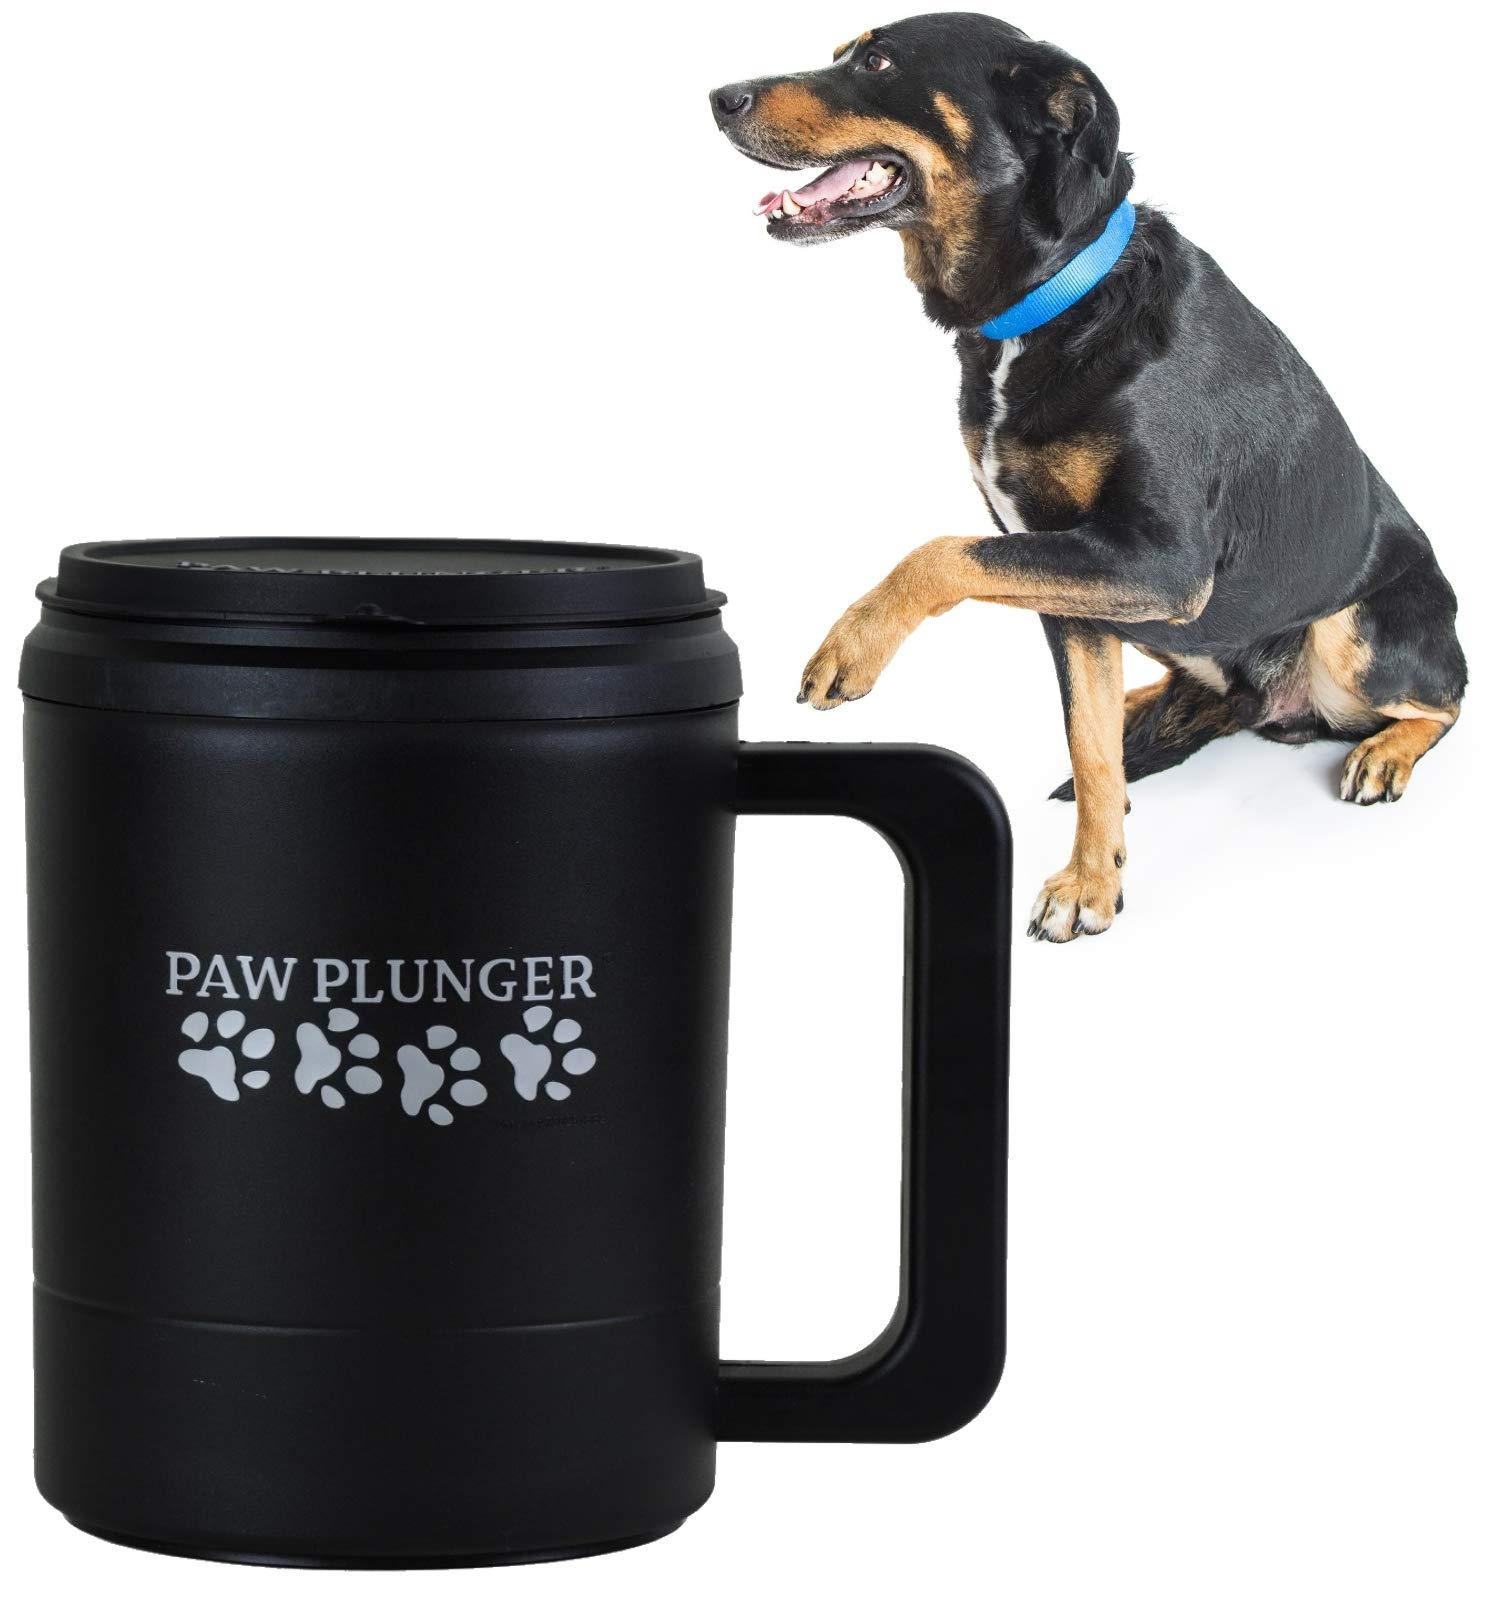 Paw Plunger for Dogs - Portable Dirty Paw Washer for Large Sized Dogs - Ideal for Dogs Over 75lbs - Cleaner Pet Paws to Save Floors/Furniture / Carpet/Vehicle from Muddy Paw Prints - Black